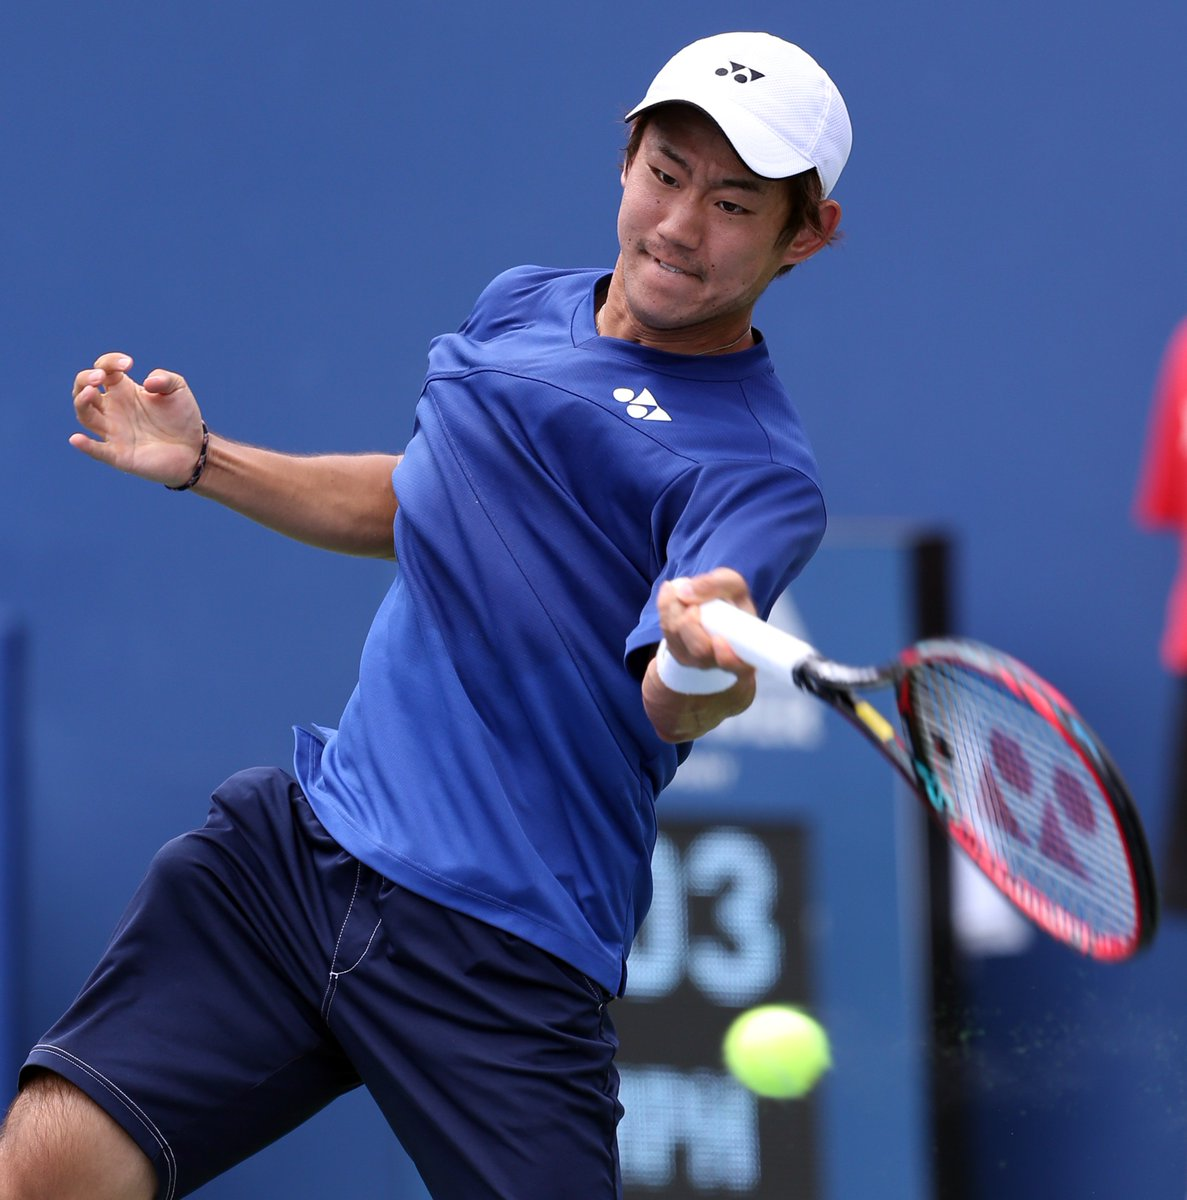 And into his 1st @ATPWorldTour SF is @yoshihitotennis after his 6-4, 6-4 win over #Zeballos. https://t.co/0mbiIXp2kJ